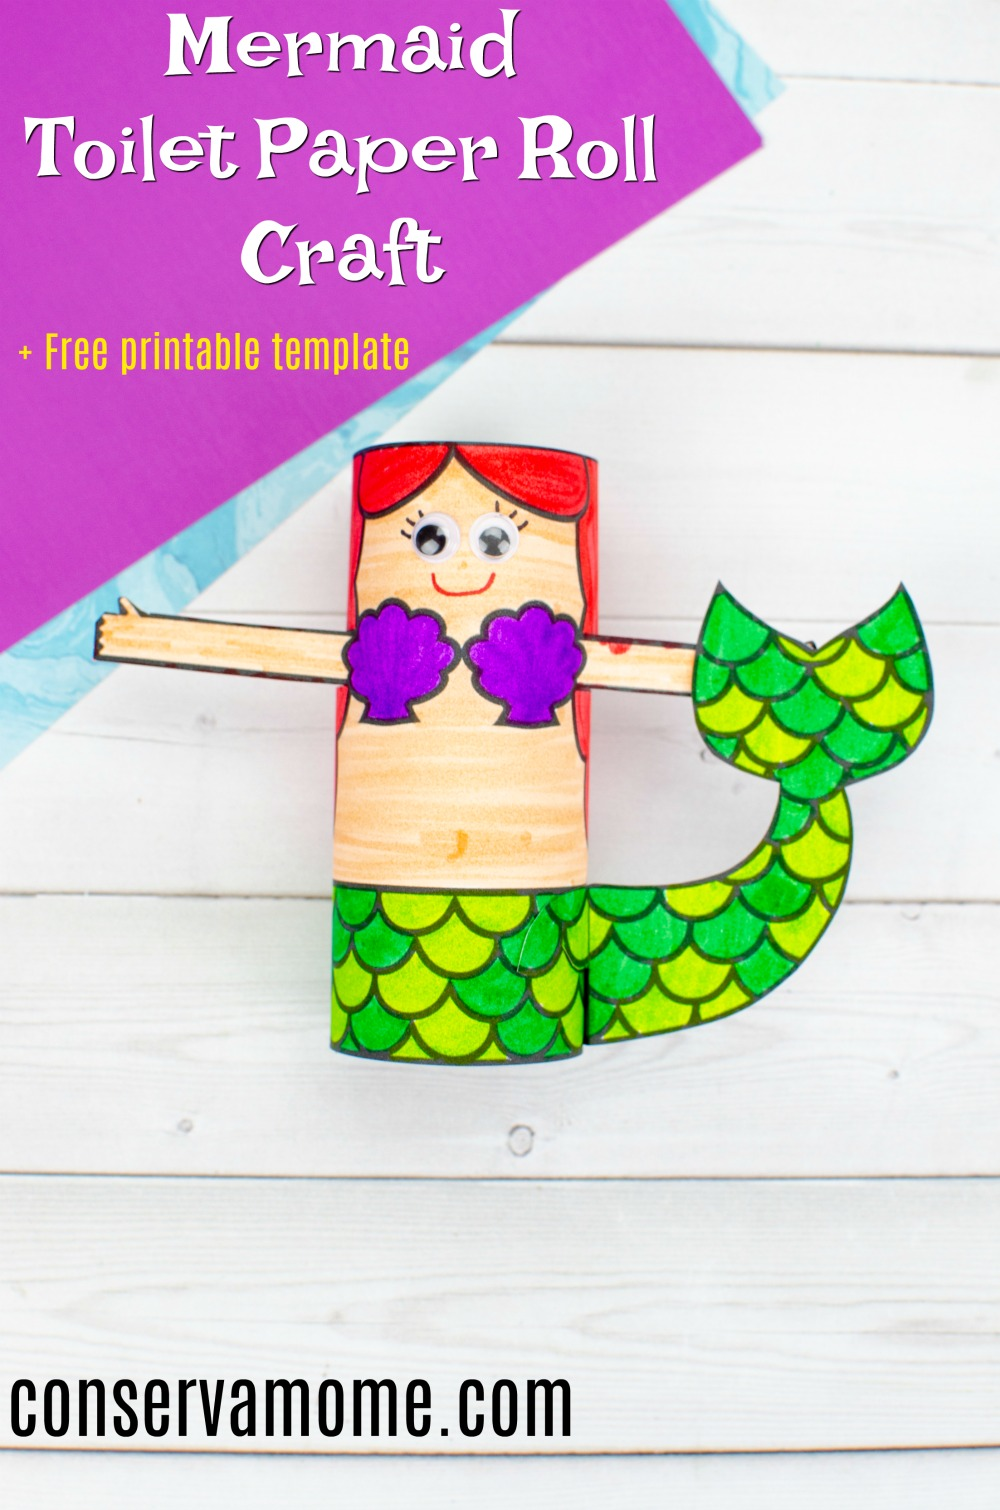 mermaid toilet paper roll craft